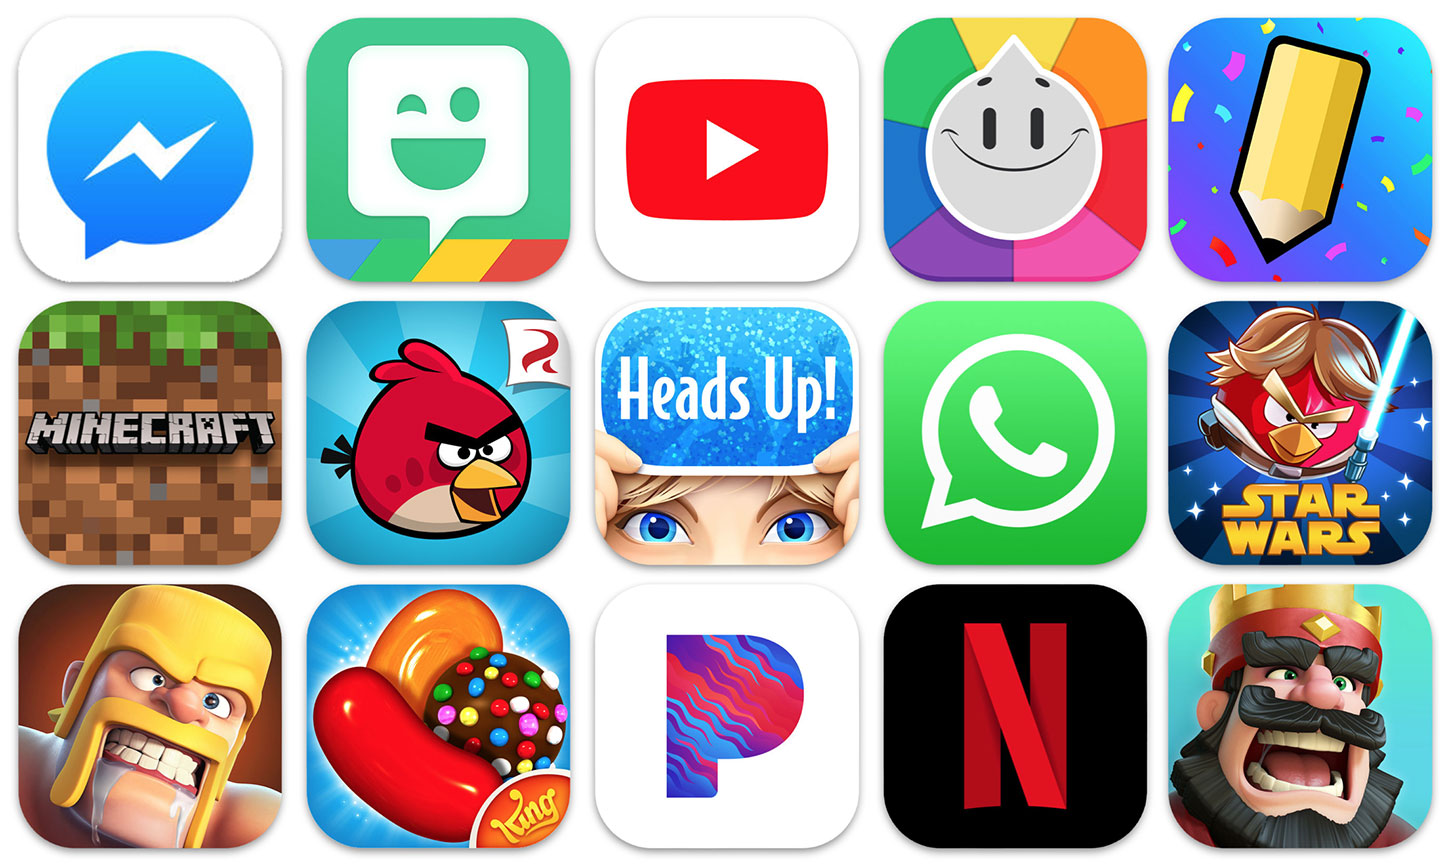 Game-Consultant.com; The biggest apps and games of the decade